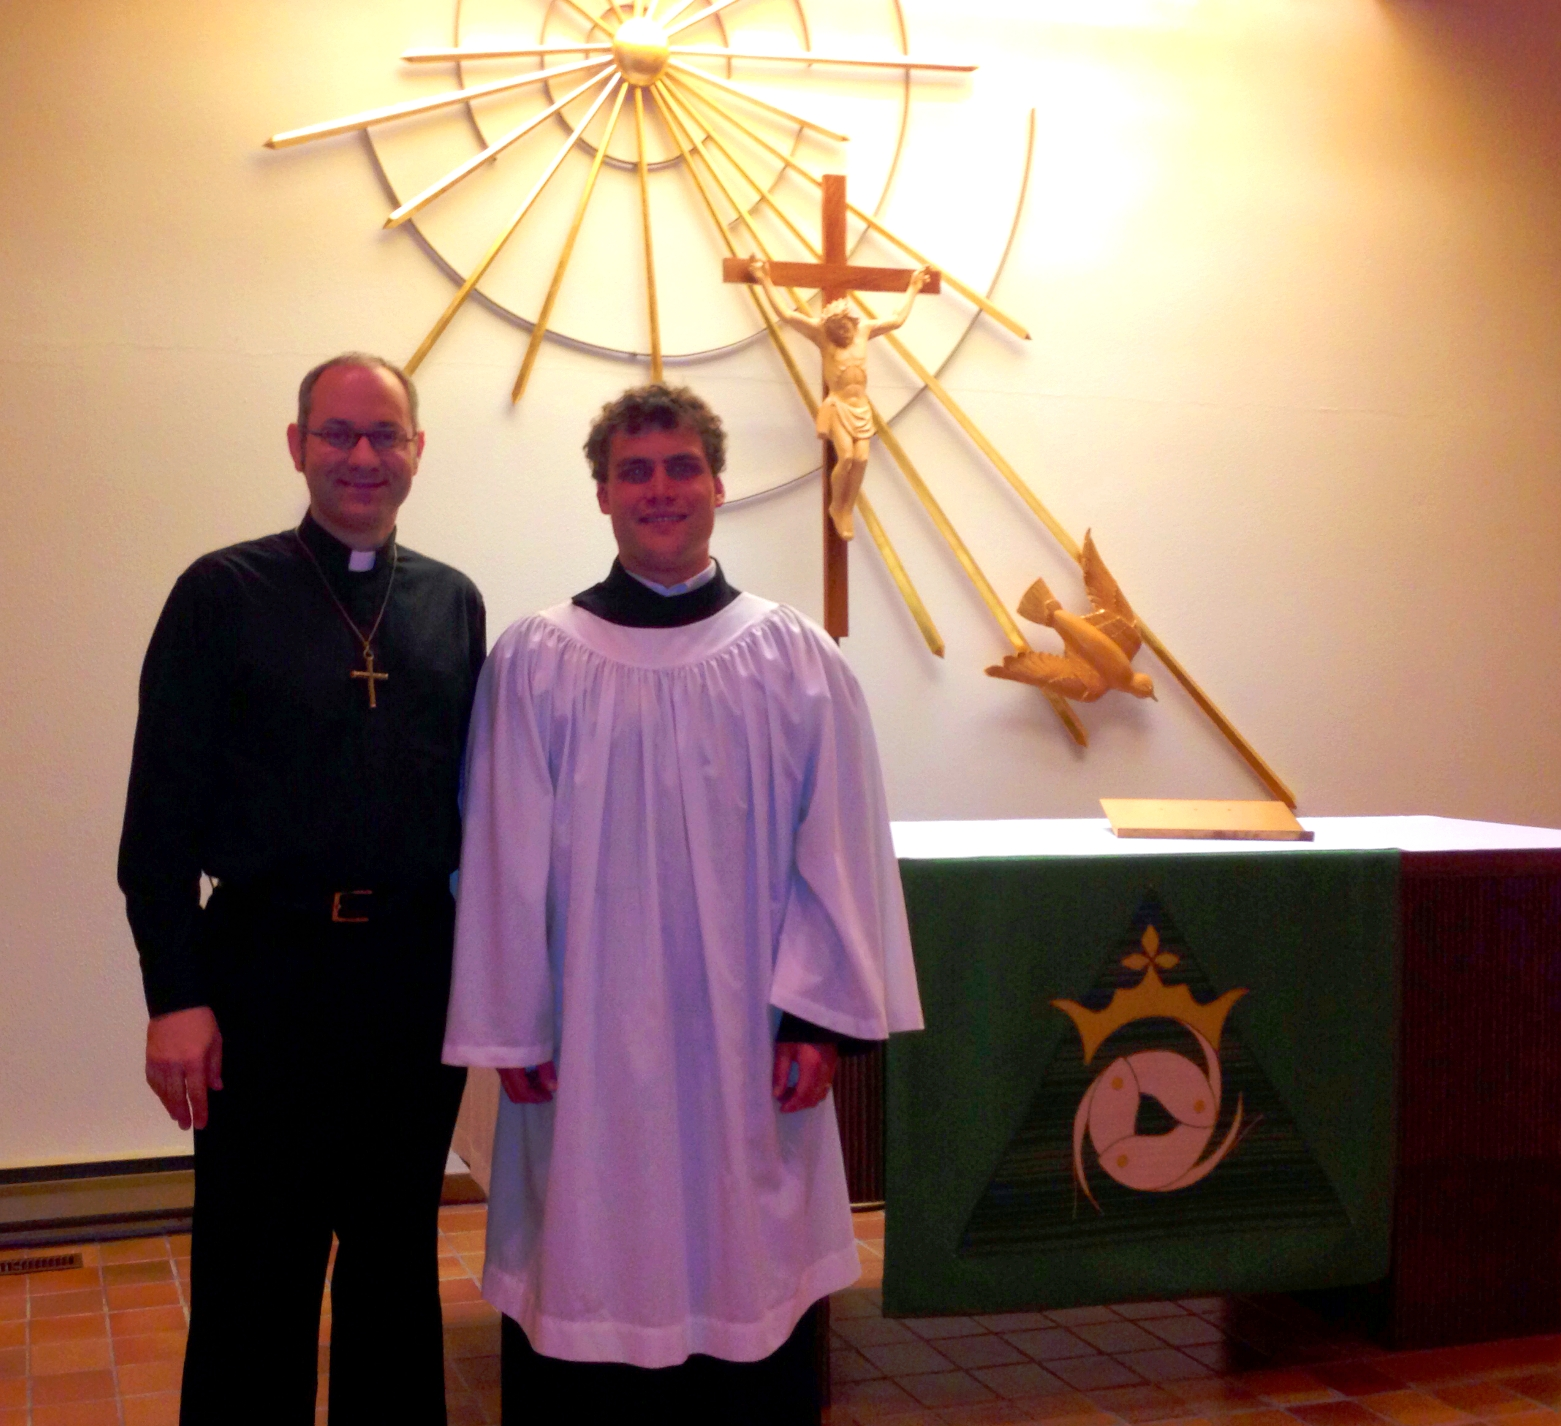 Rev. Ted Giese Meets Mount Olive's New Vicar, James Preus from CLTS. - Image 1